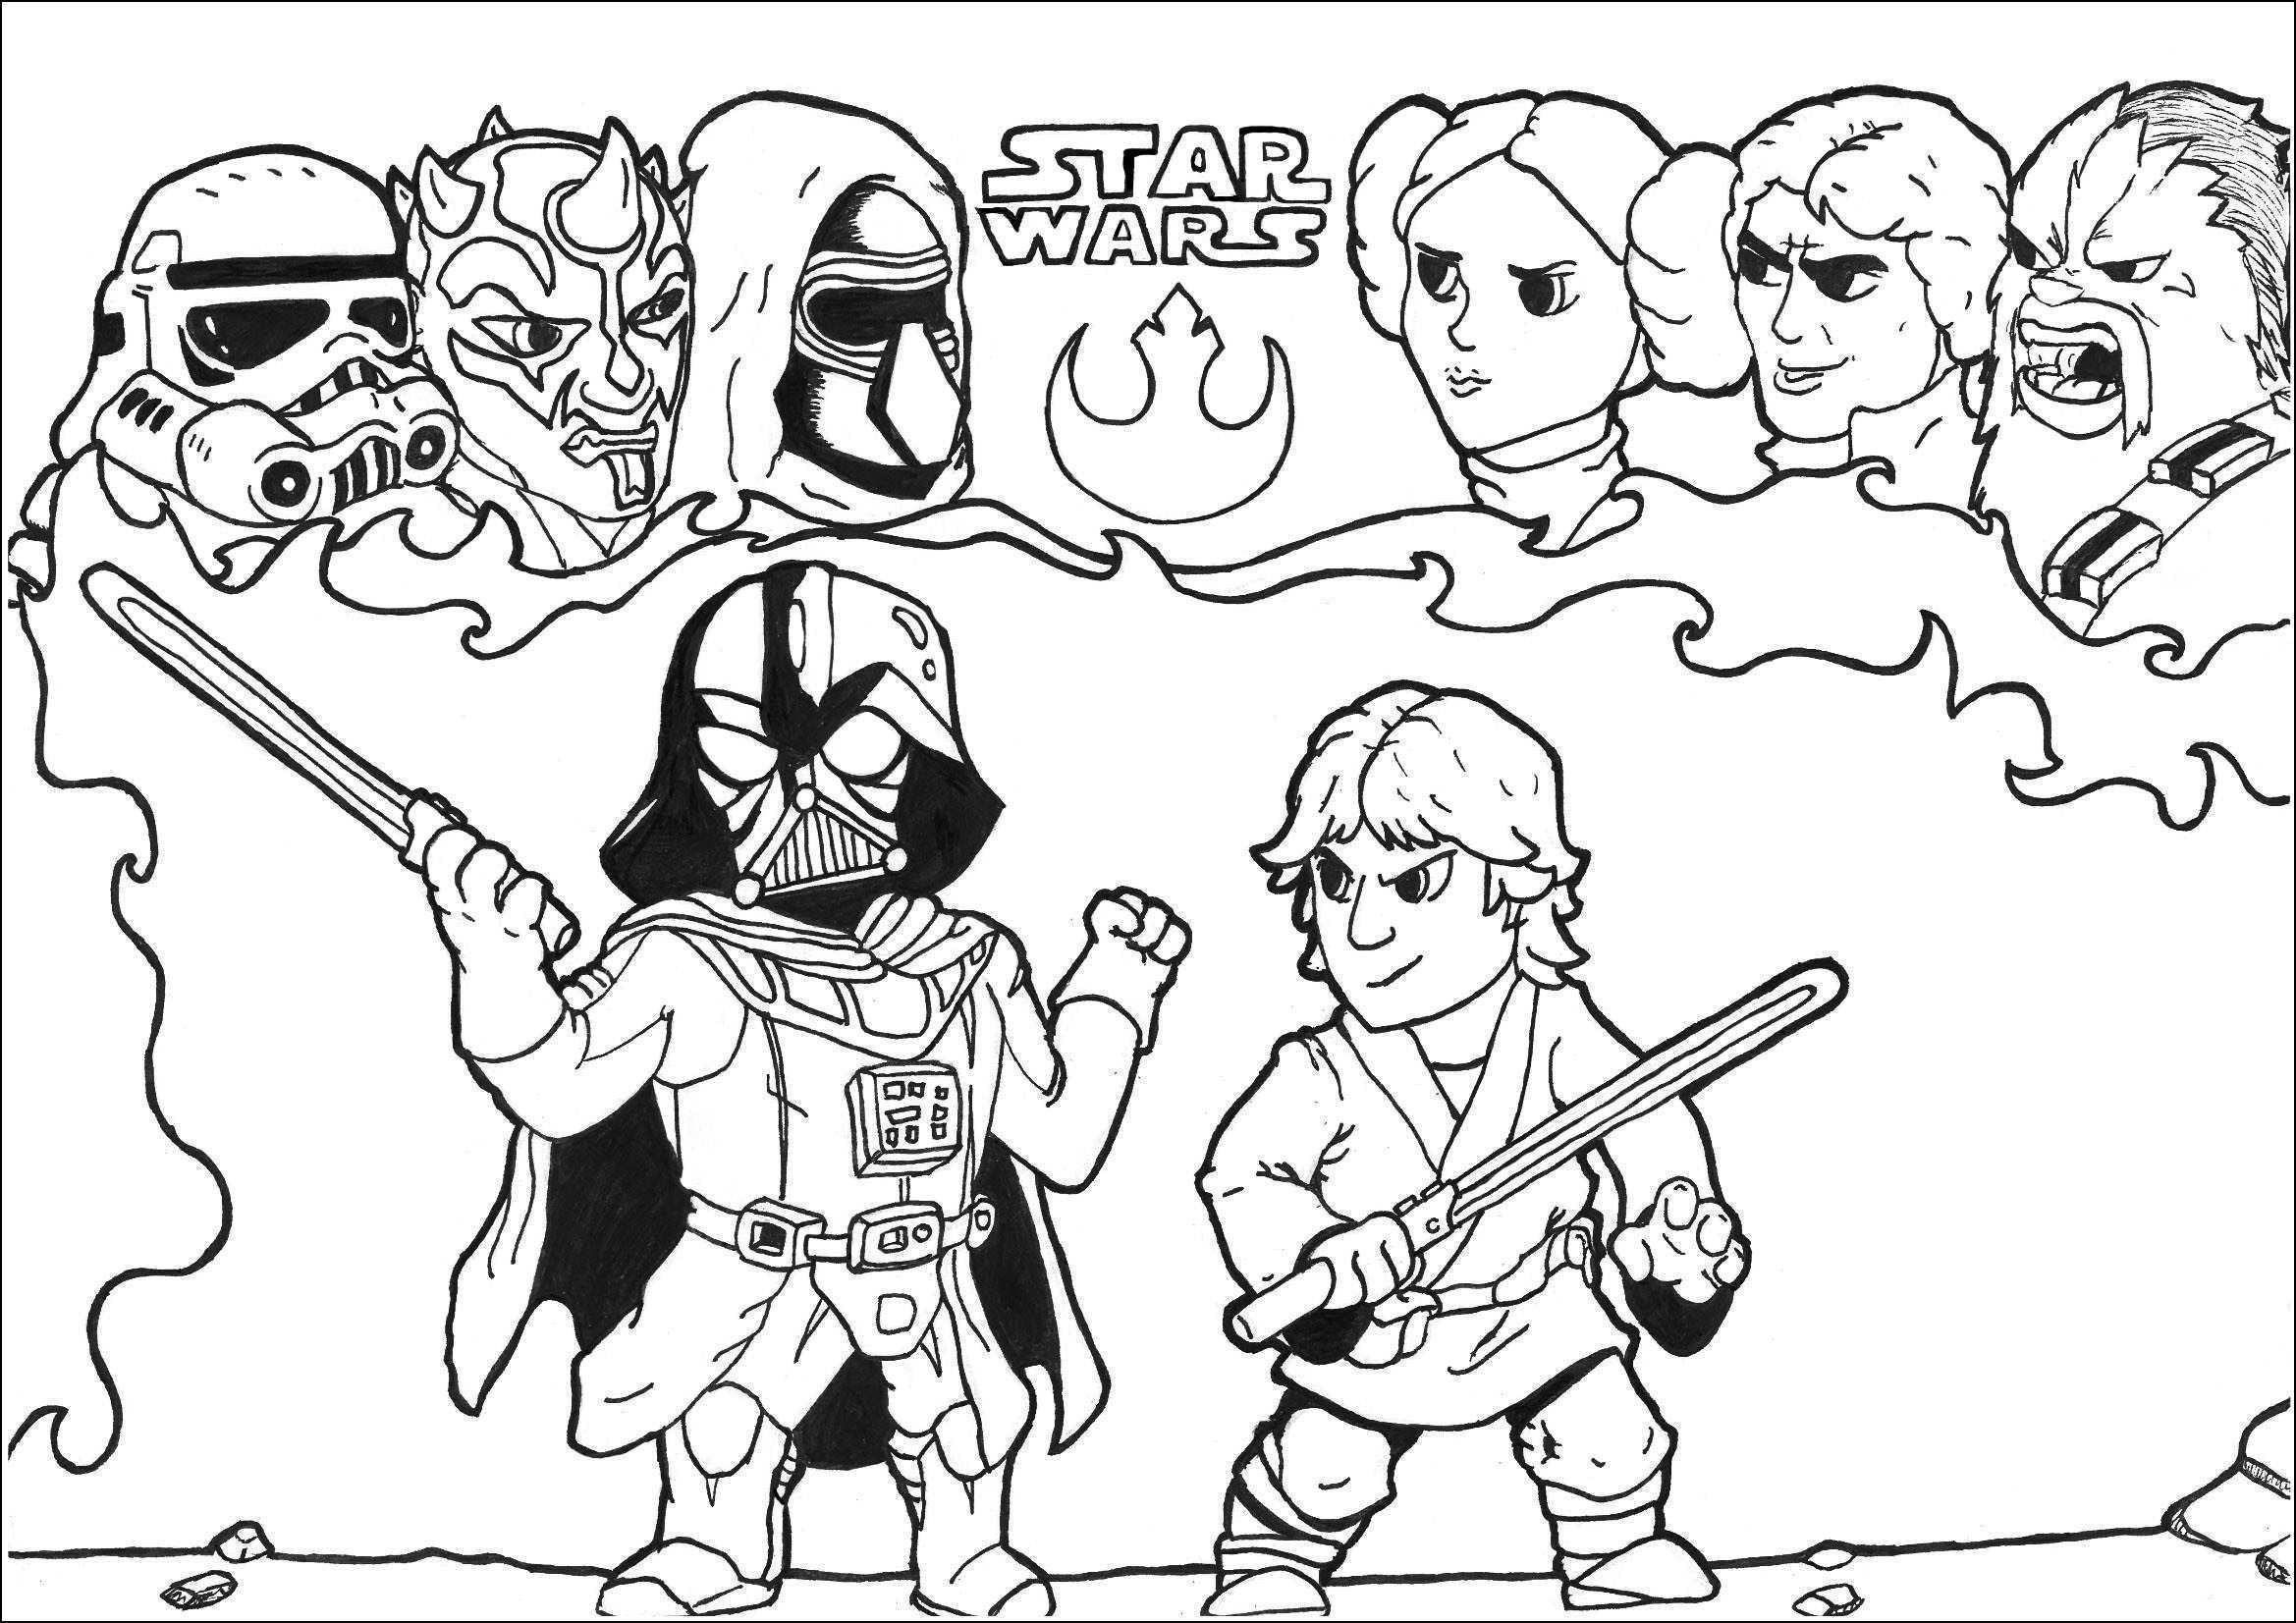 Star Wars Coloring Sheets Elegant Ausmalbilder Angry Birds Angry Bird Star Wars Coloring Page In 2020 Star Wars Coloring Sheet Star Wars Colors Star Wars Coloring Book